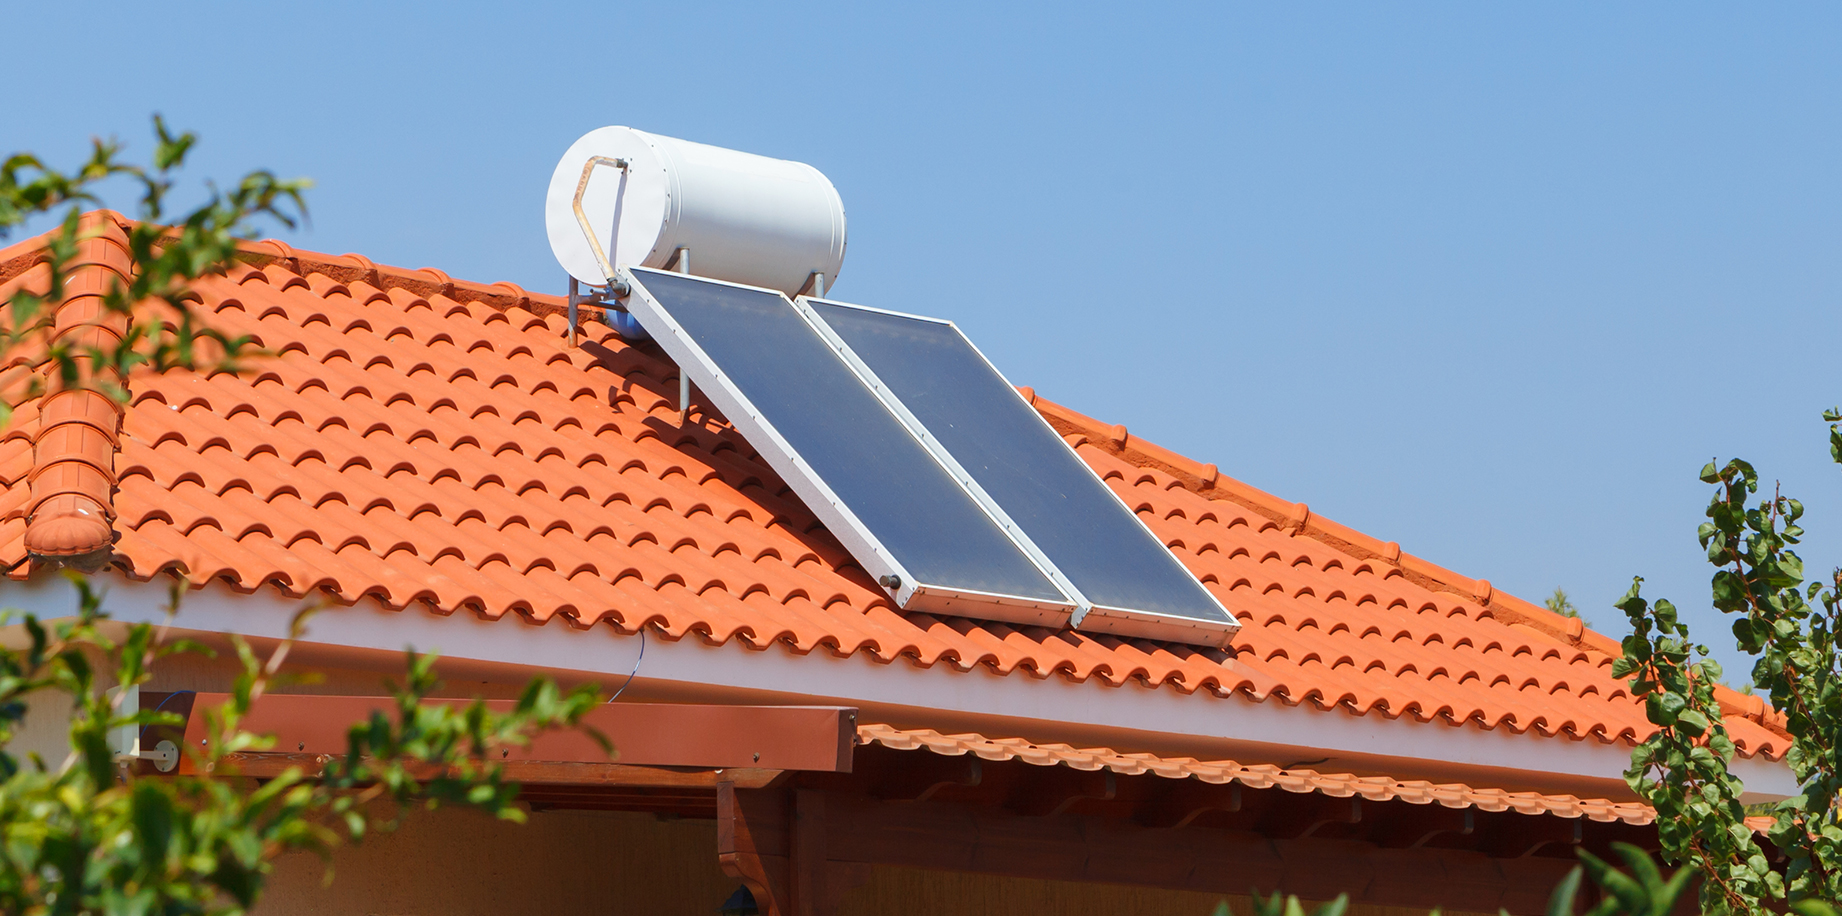 solar-powered-water-heater Water Heaters- Which Type Is the Right One for Your Home?